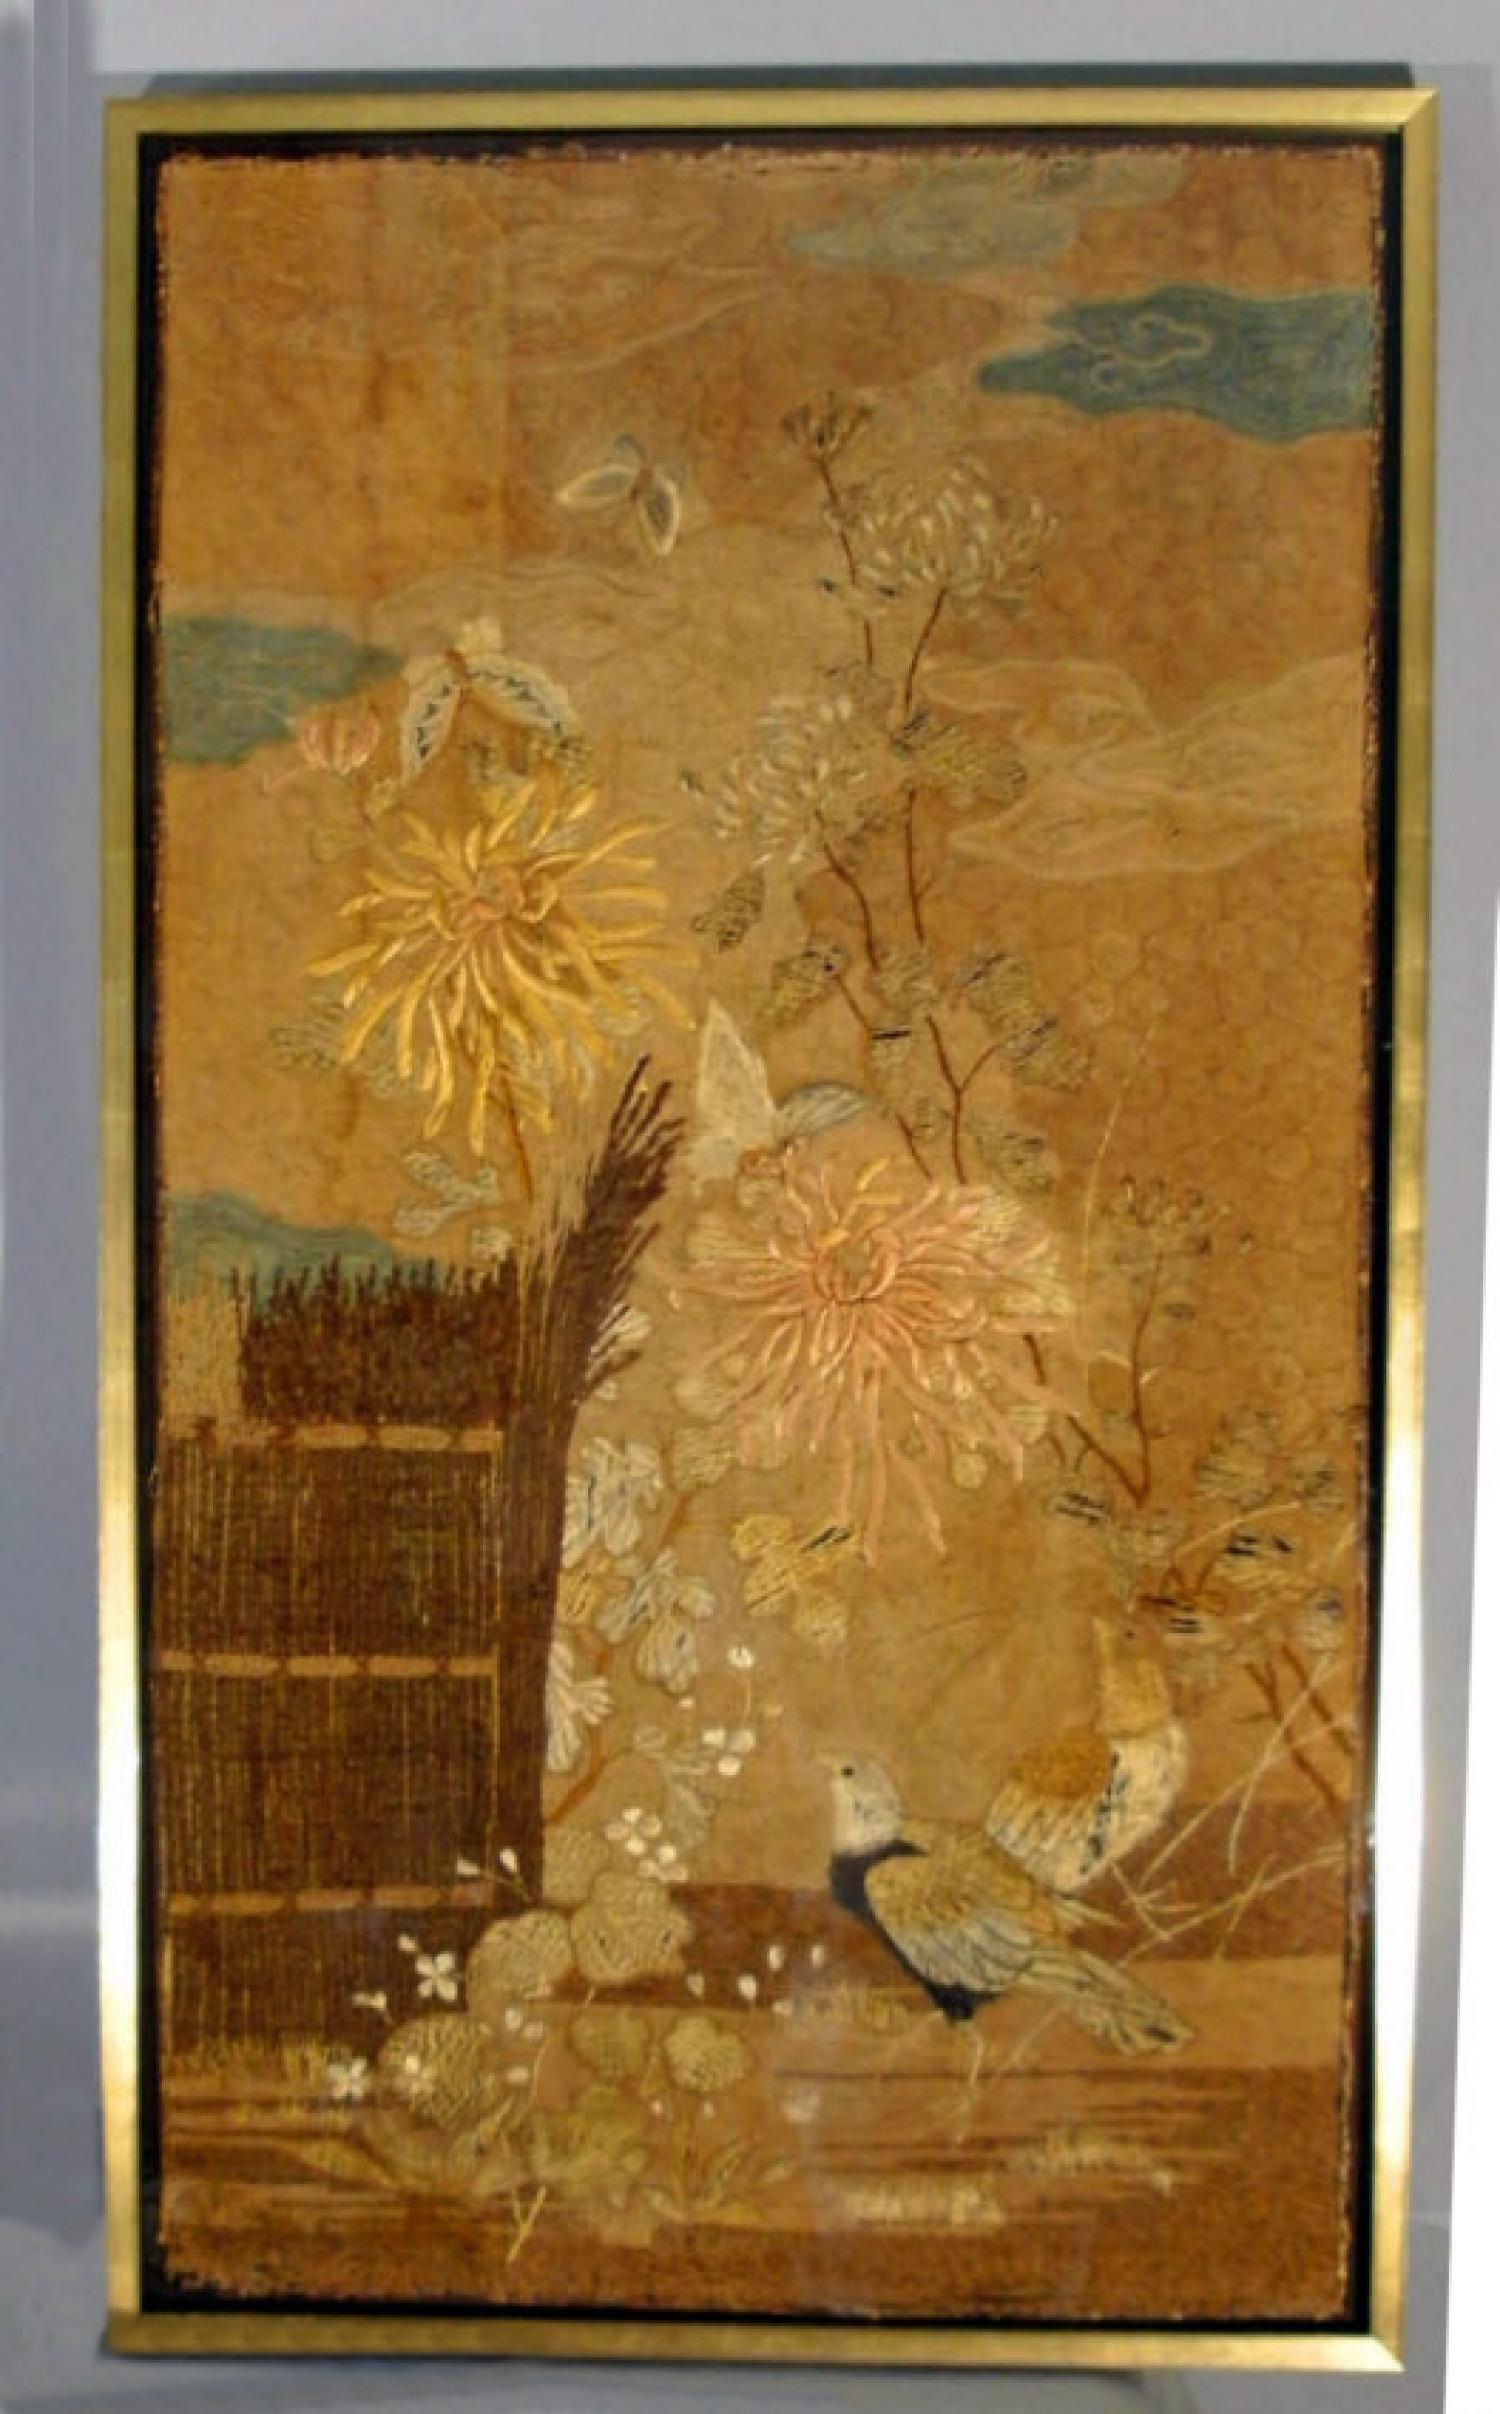 Chinese couched silver wrapped embroidery classic oriental garden scene